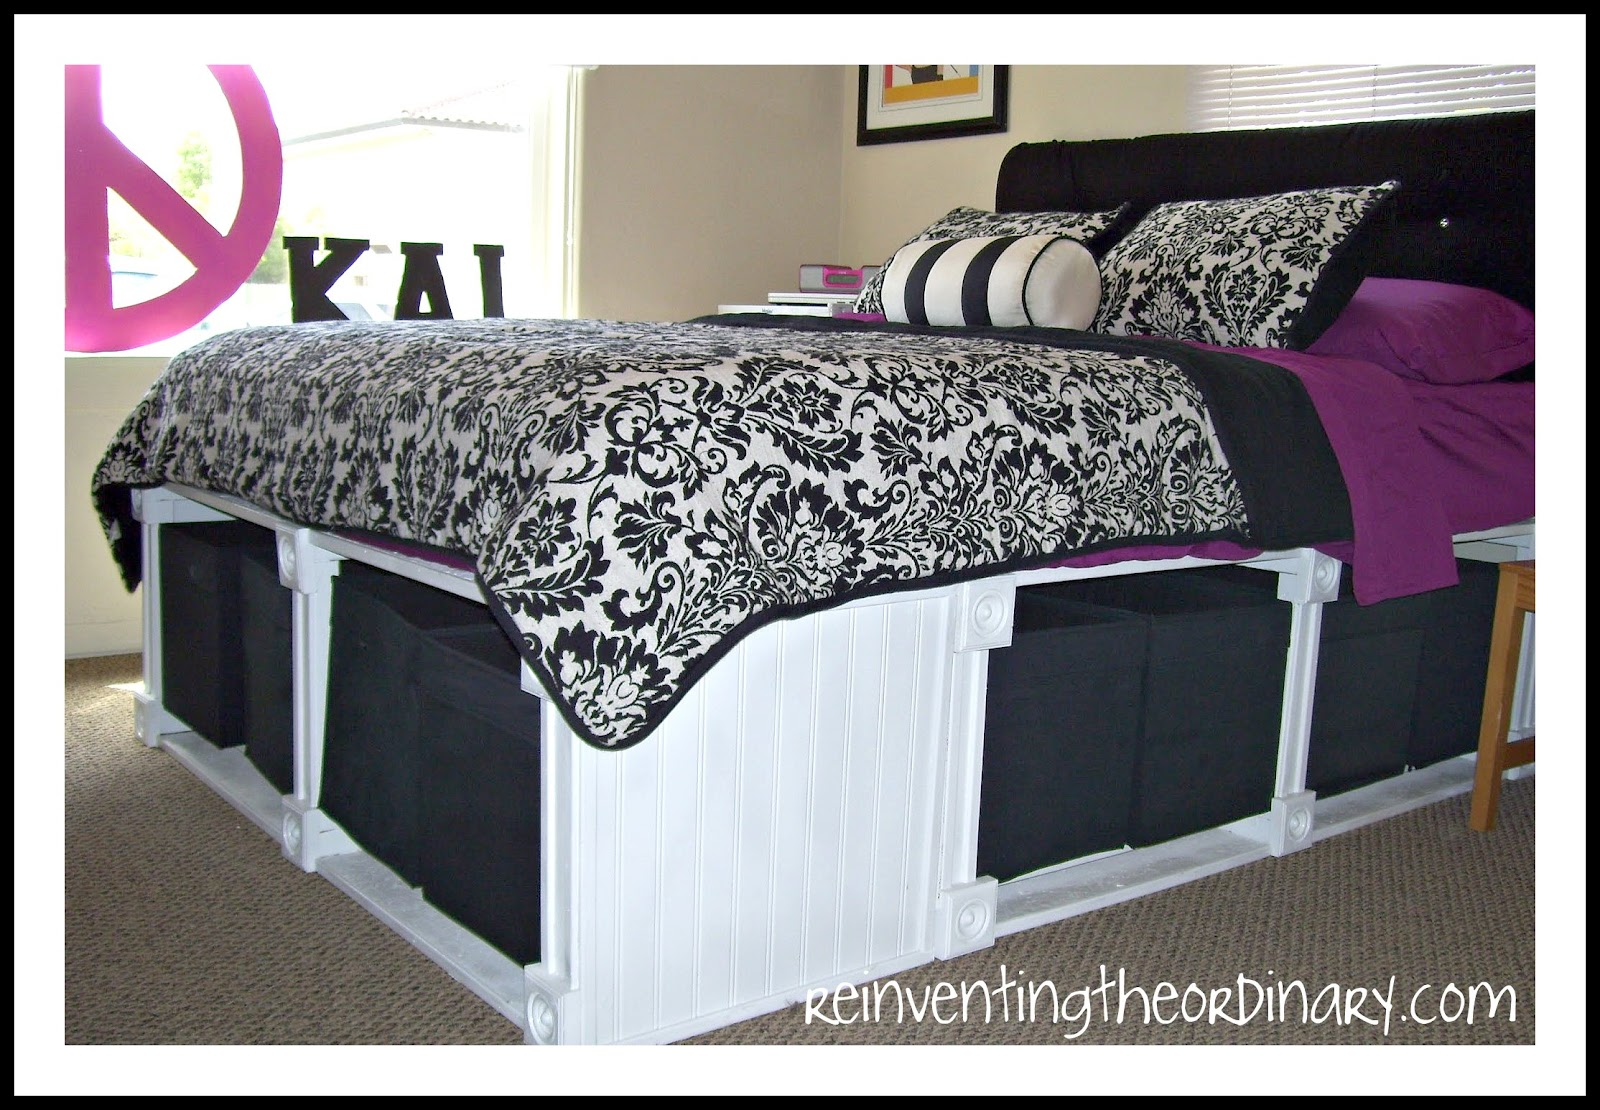 diy platform bed with storage drawers plans | Discover Woodworking ...